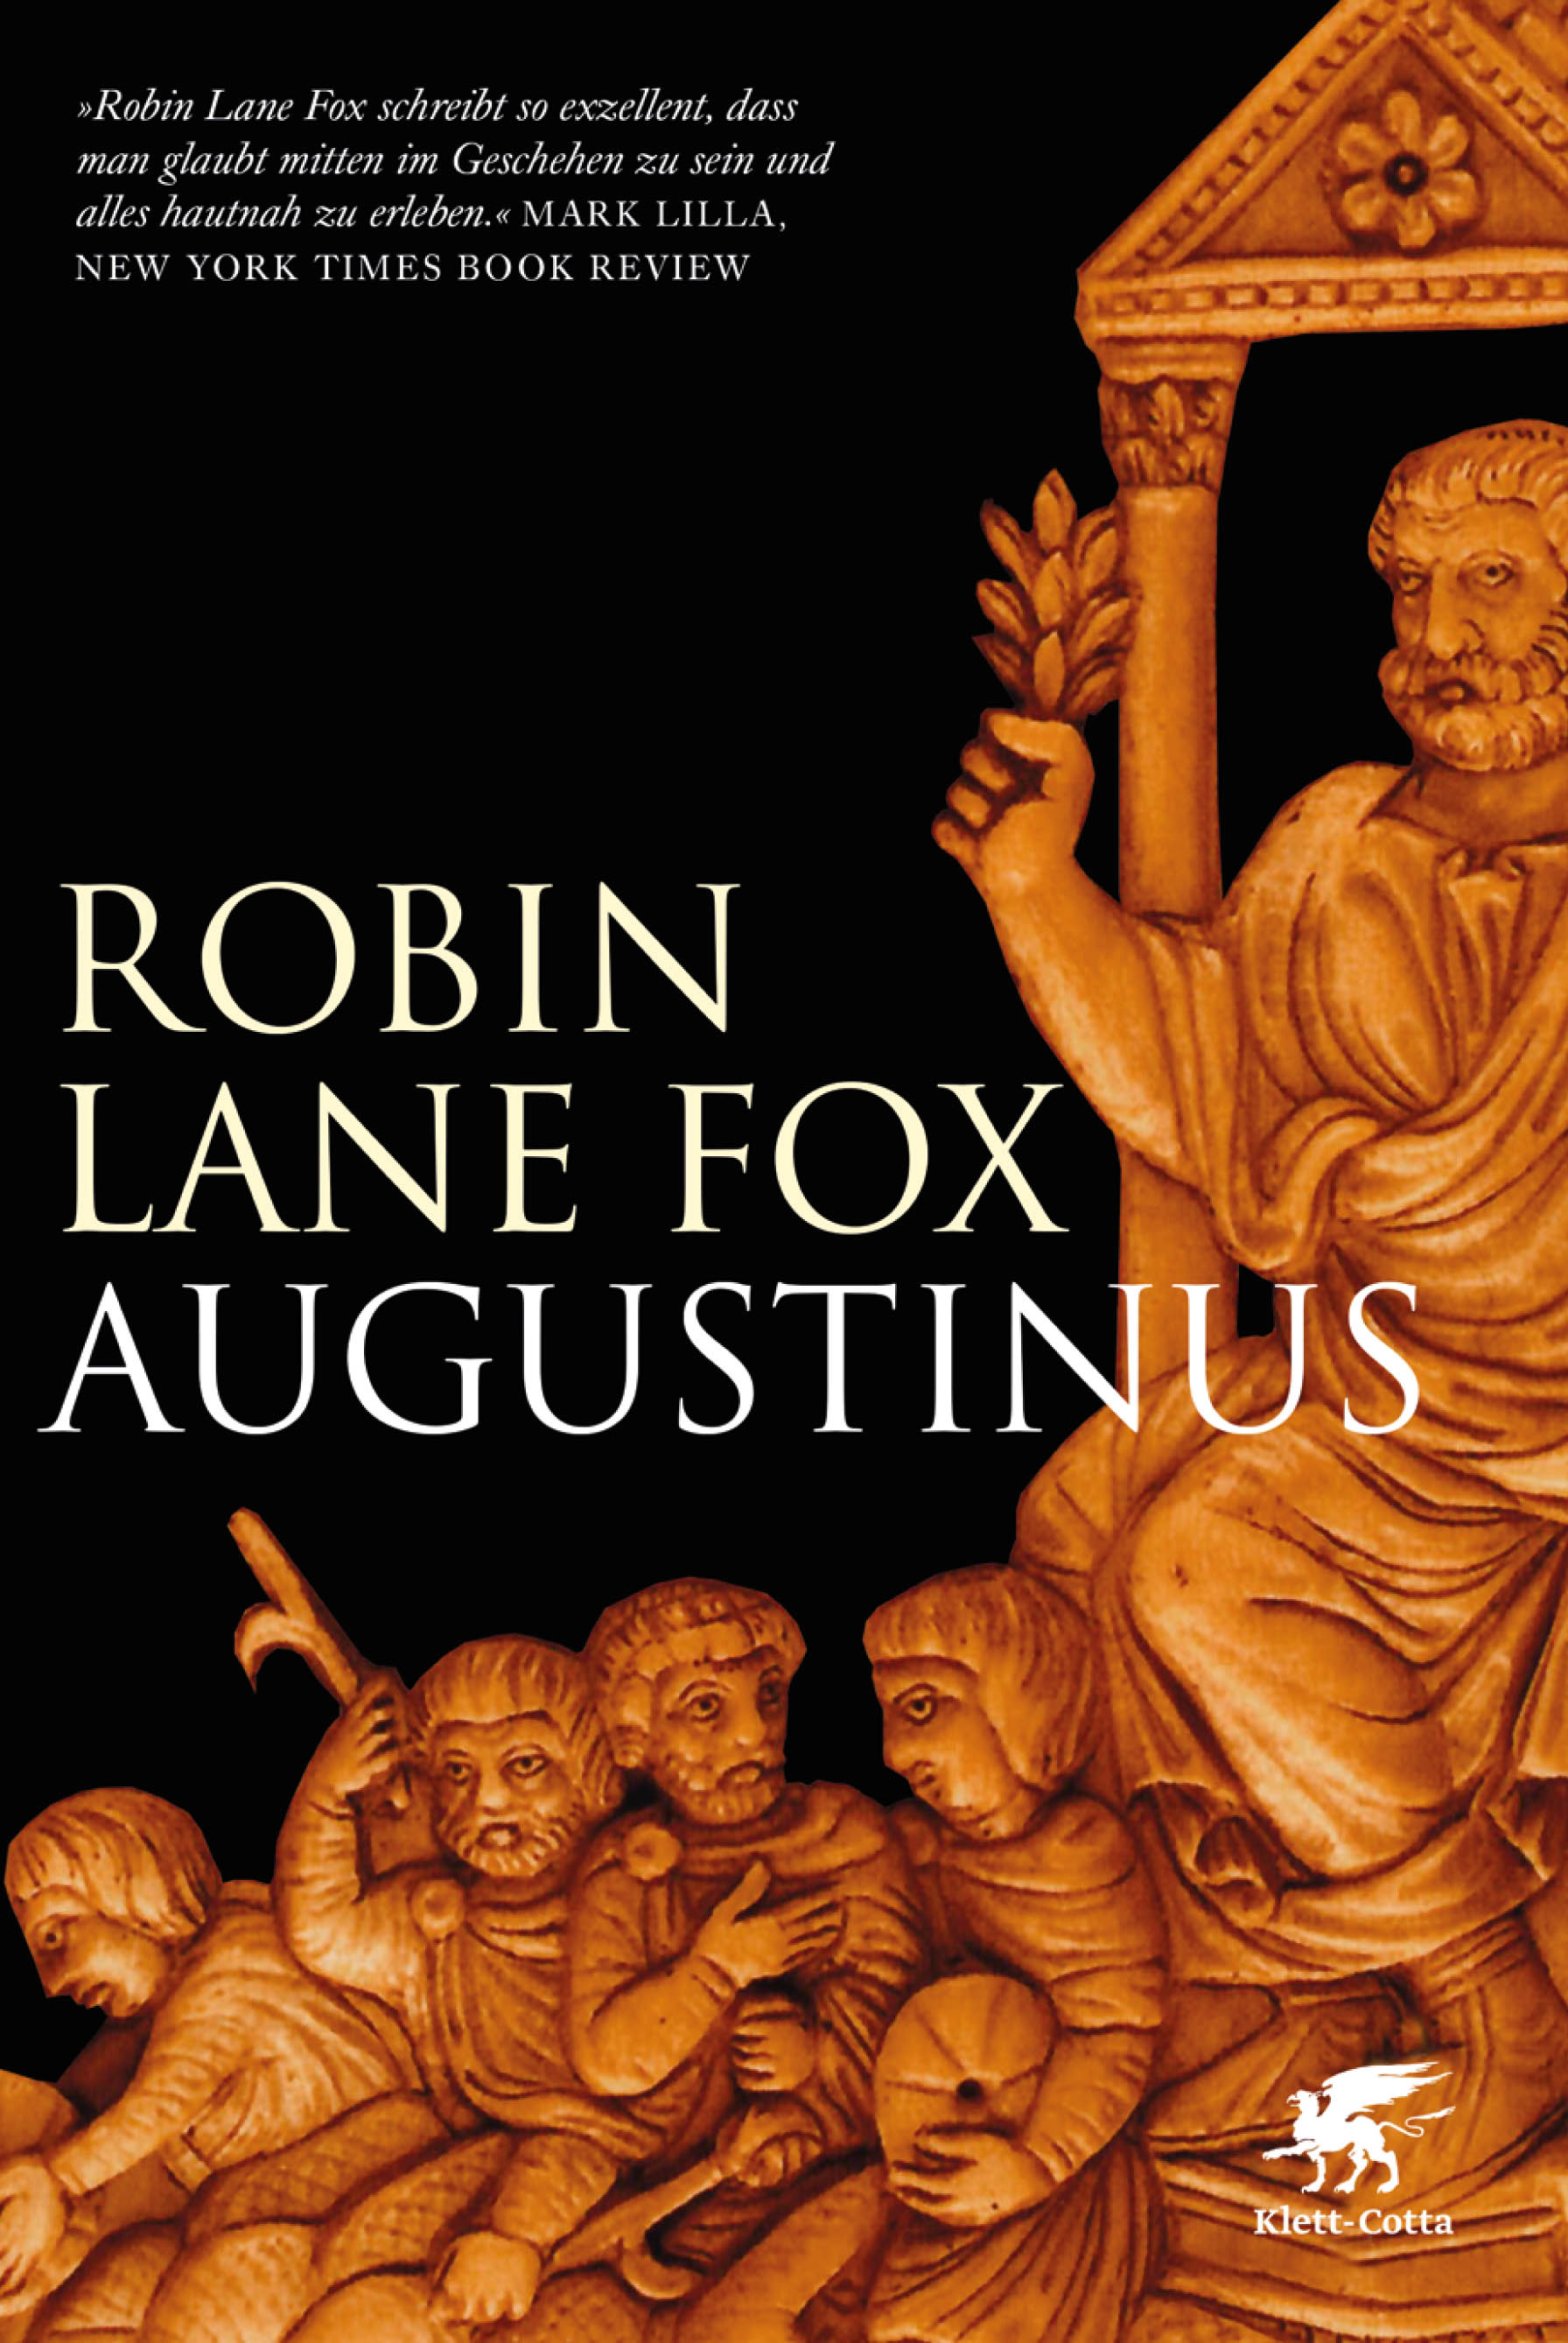 Augustinus Book Cover